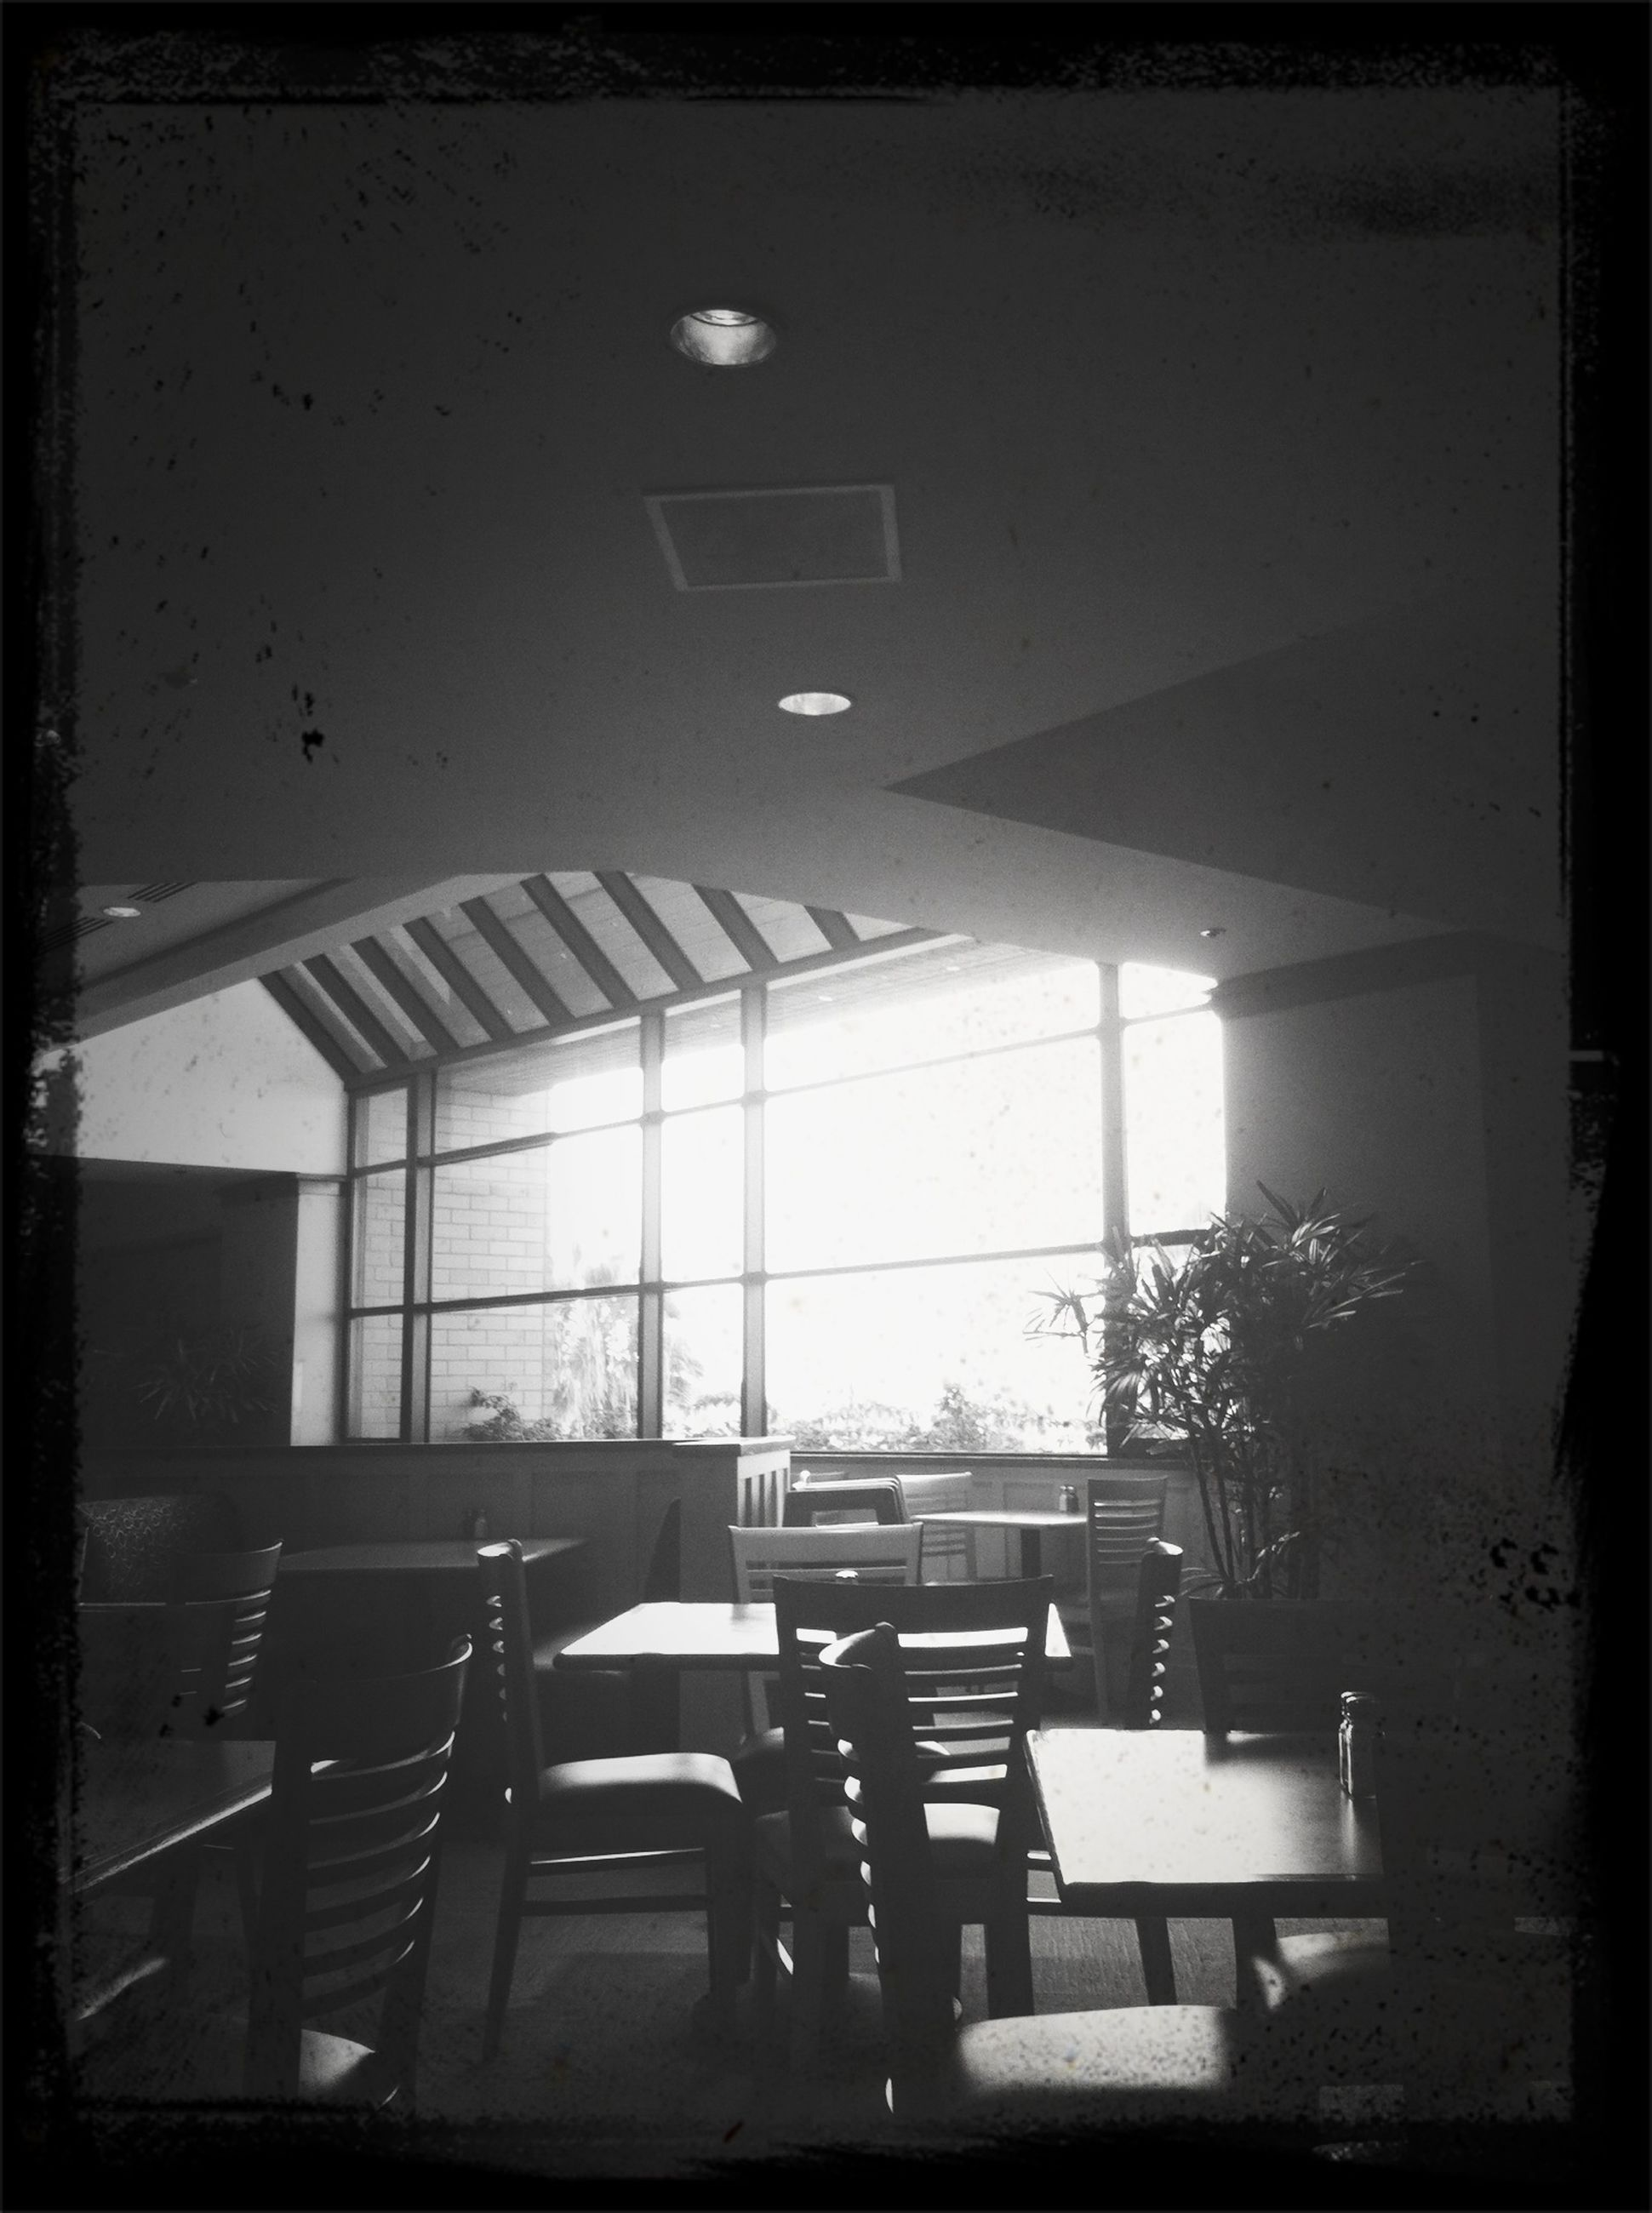 indoors, transfer print, chair, architecture, auto post production filter, built structure, absence, empty, window, table, illuminated, restaurant, building exterior, lighting equipment, no people, city, day, home interior, house, interior